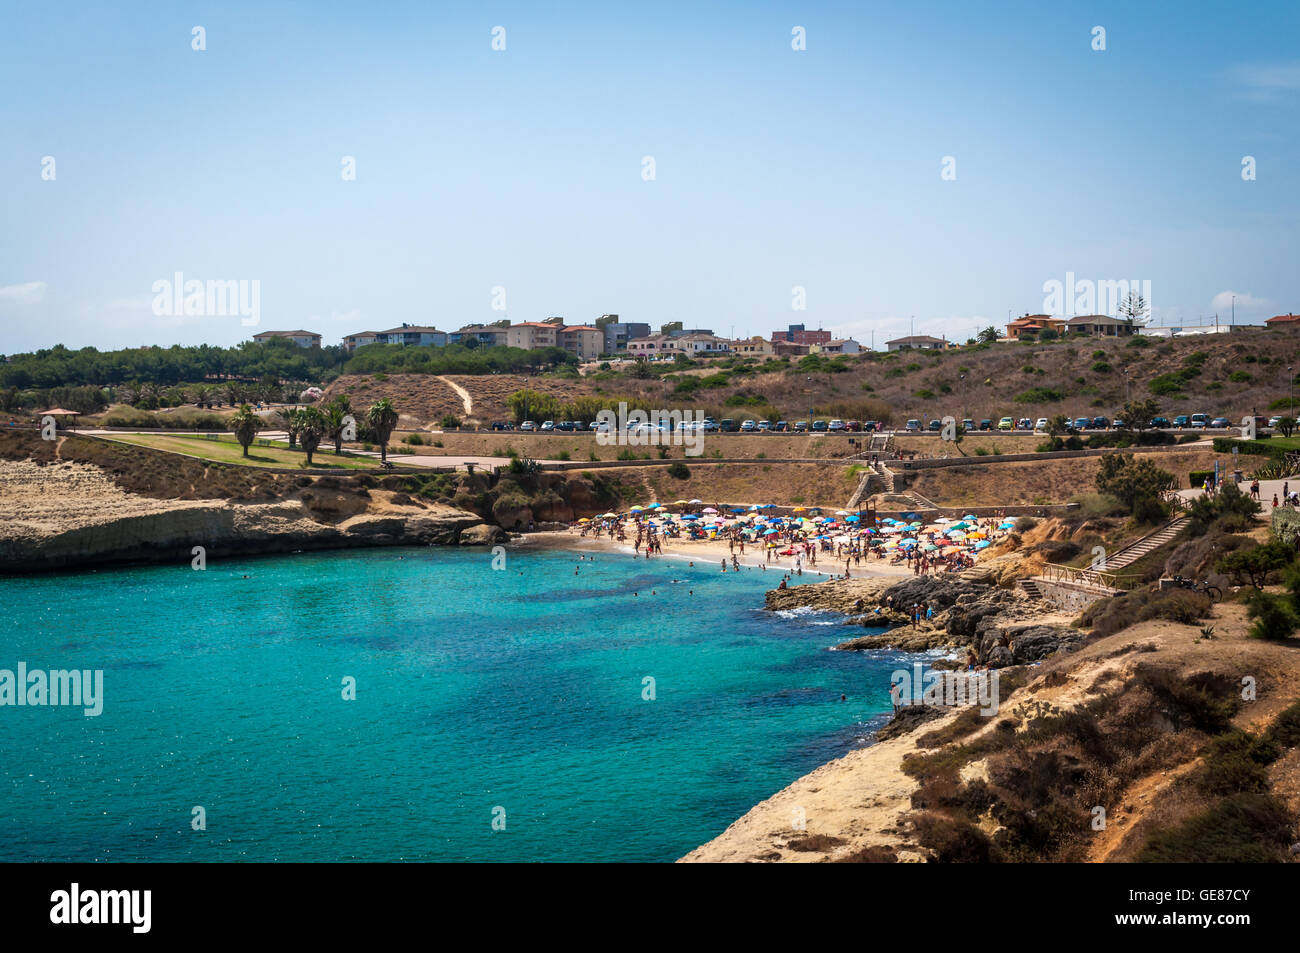 Landscape of beach of Balai, Sardinia, in a sunny day of summer Stock Photo